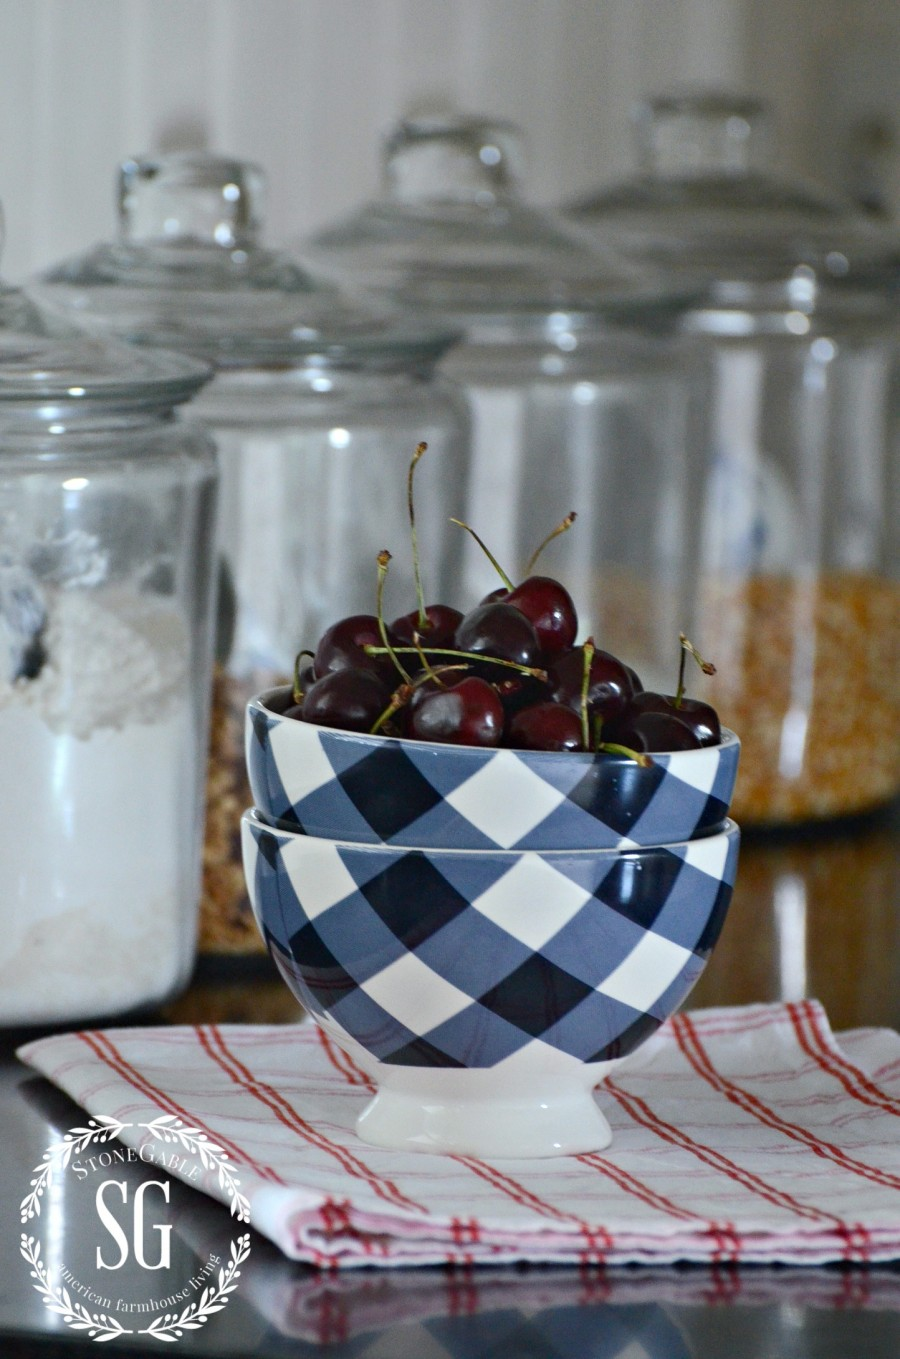 SUMMER HOME TOUR-summer kitchen-cherries-blue and white bowl-stonegableblog.com